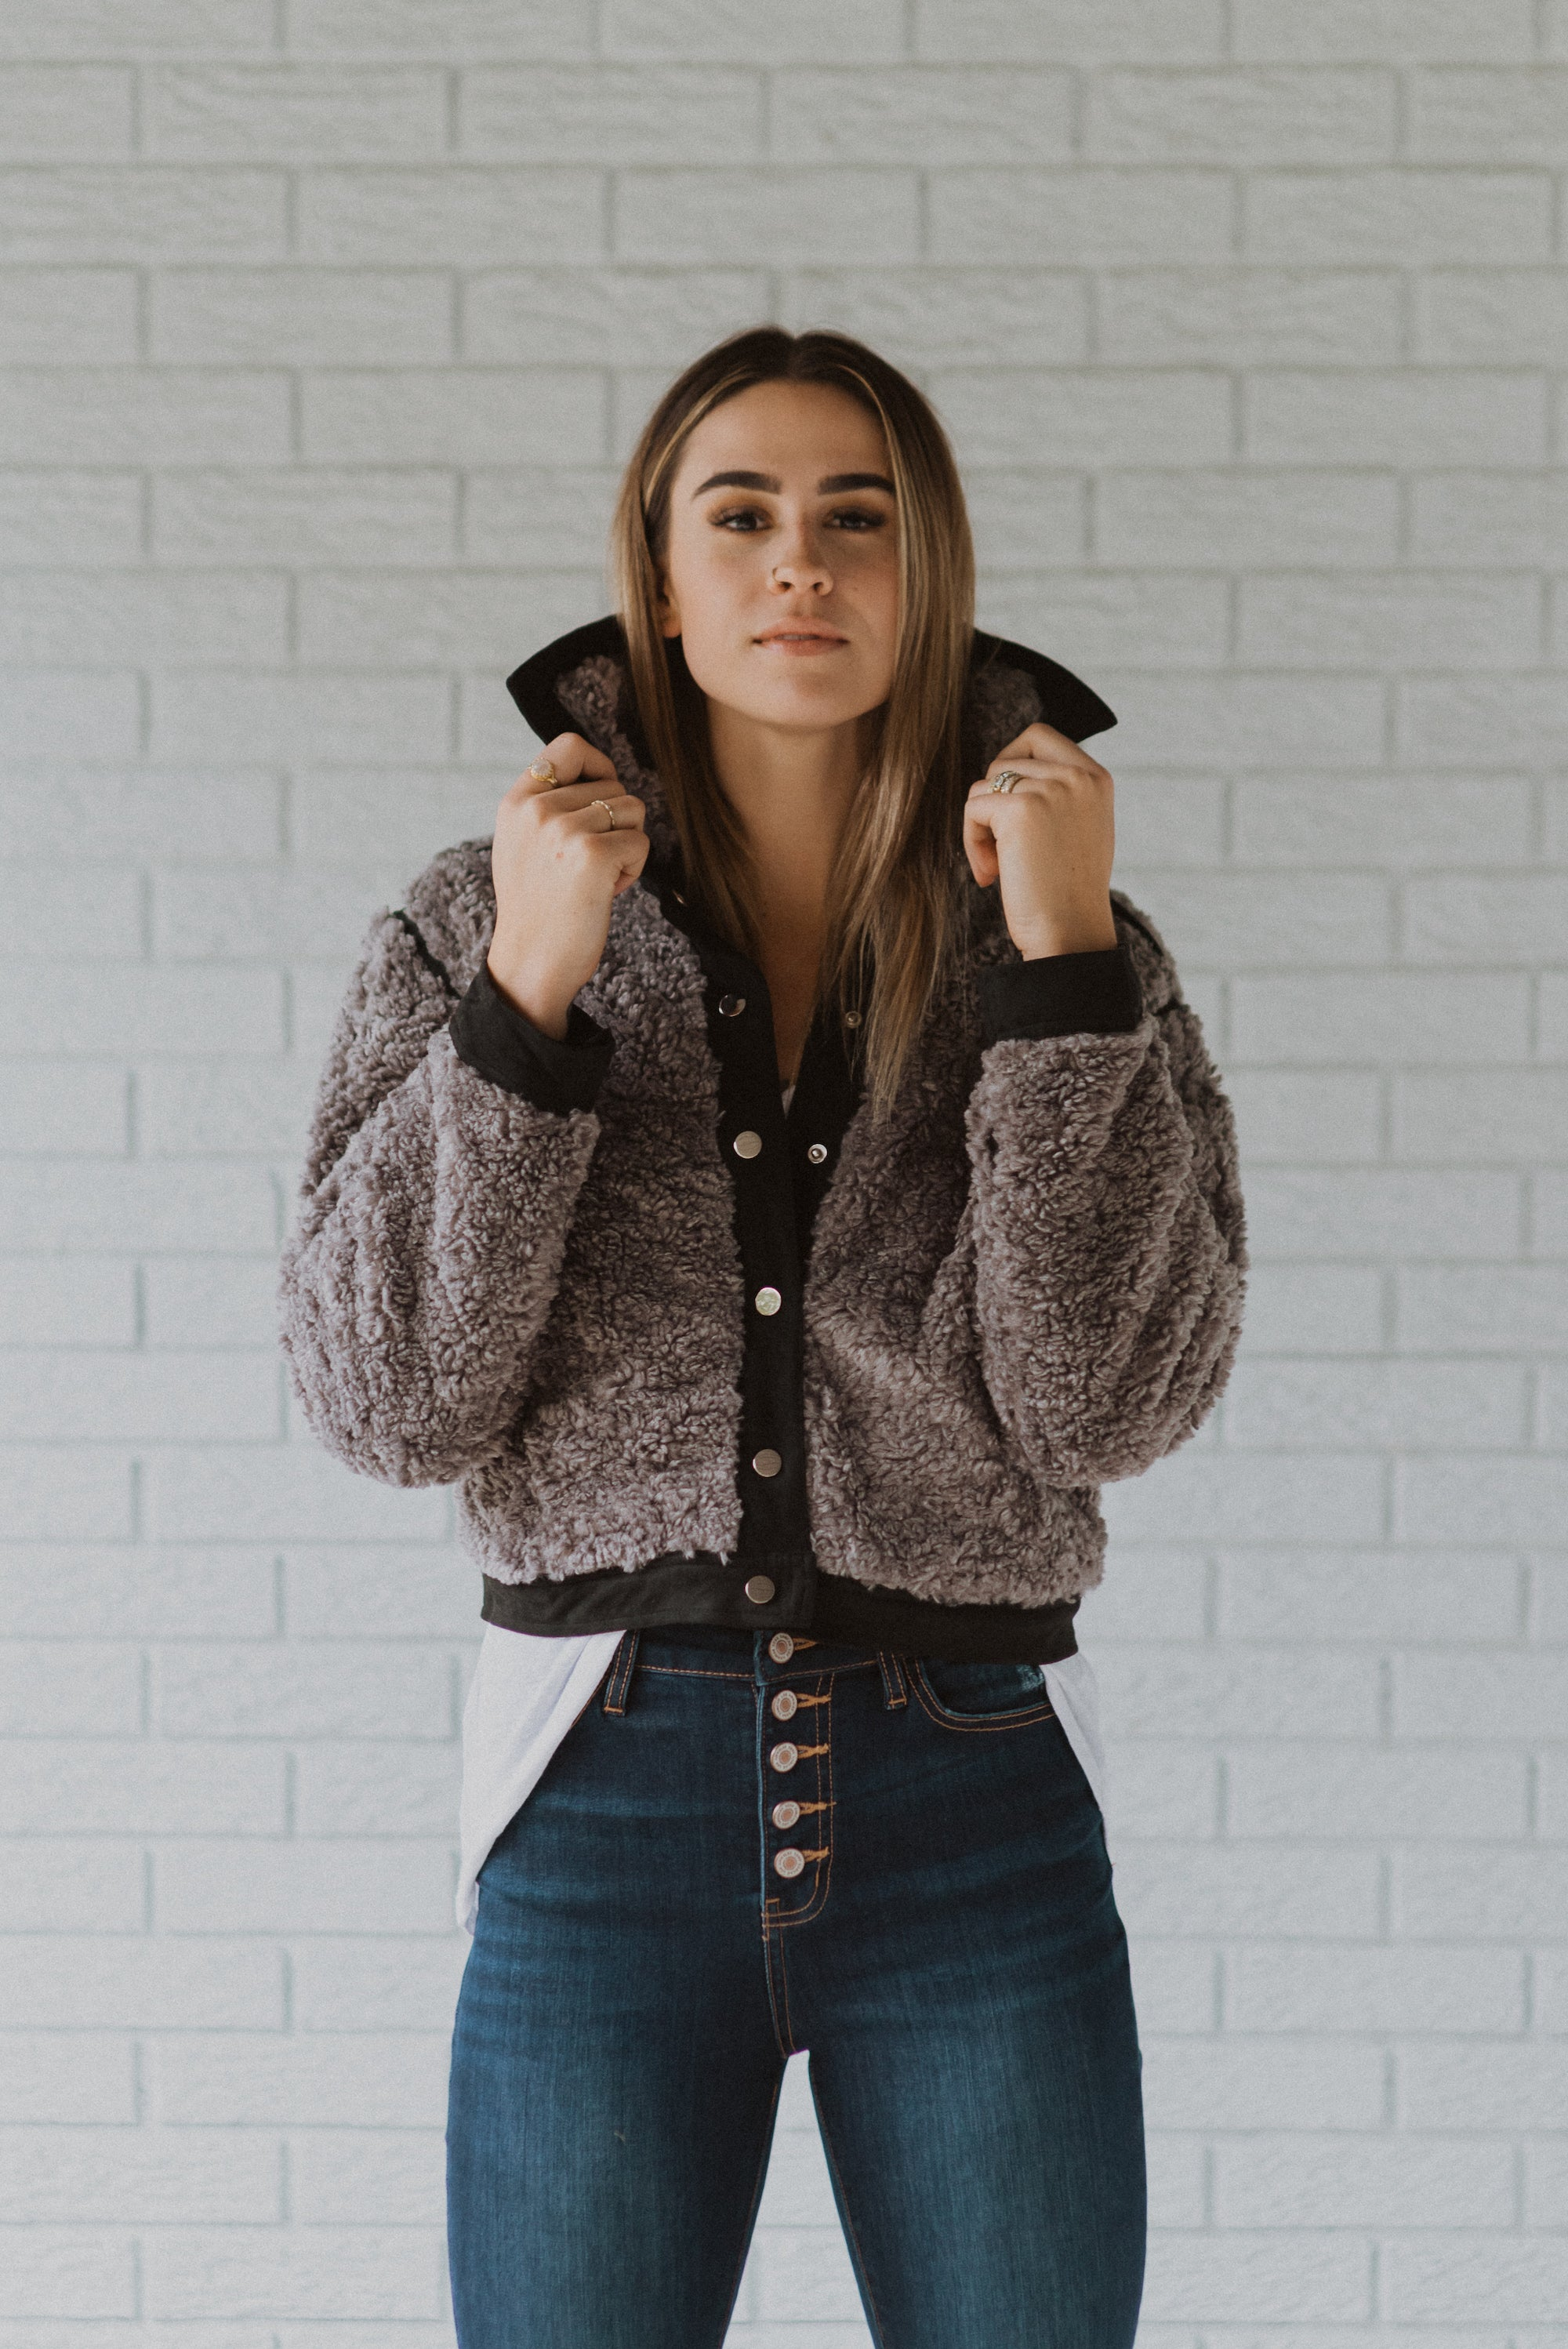 Top It Off Shearling Fuzzy Jacket / FINAL SALE